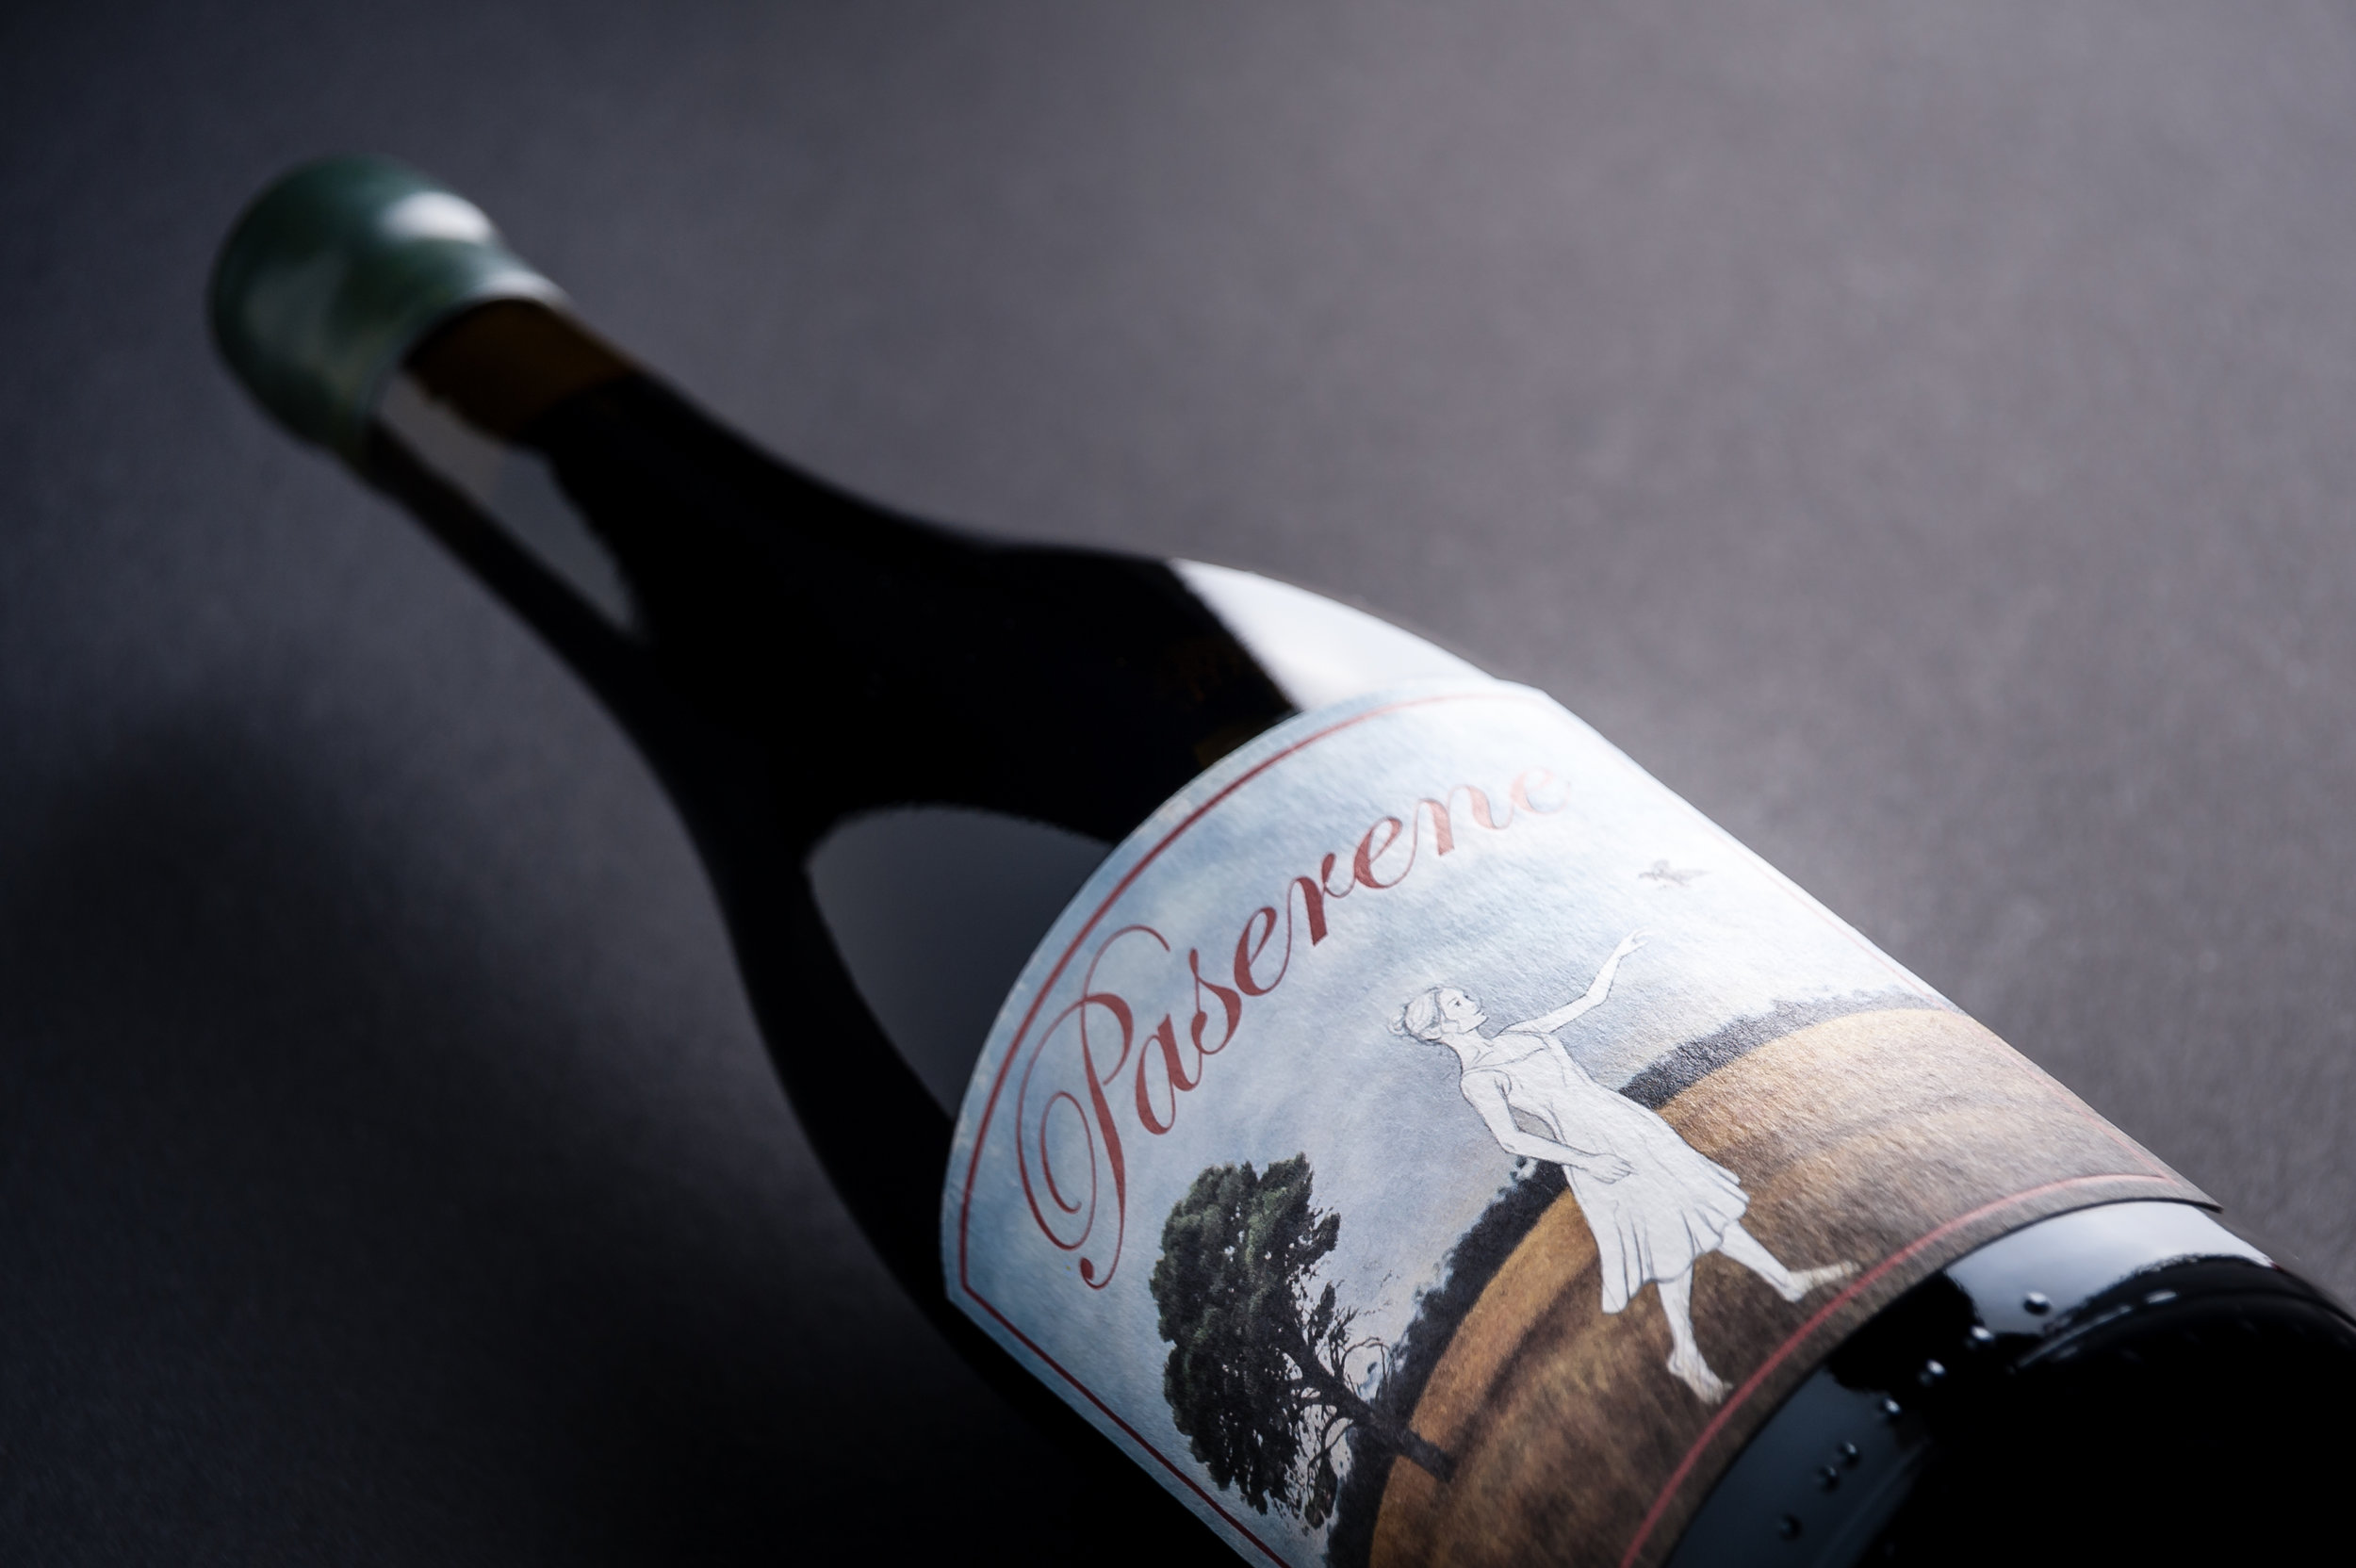 Paserene Union 2016 - 44% Syrah, 34% Carignan and 22% Mourvèdre